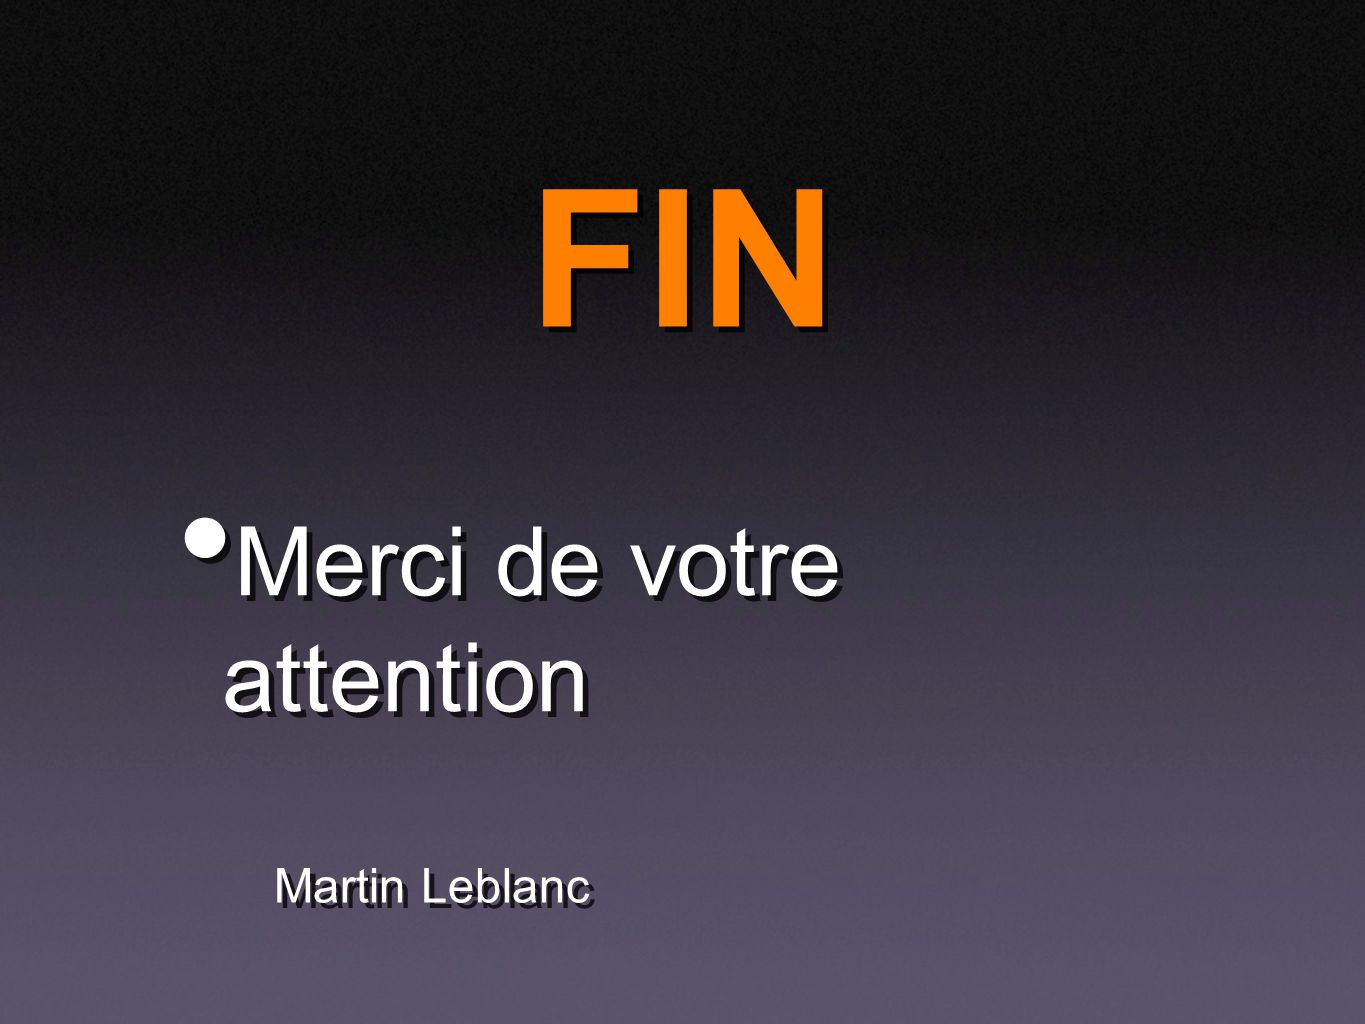 FIN Merci de votre attention Martin Leblanc